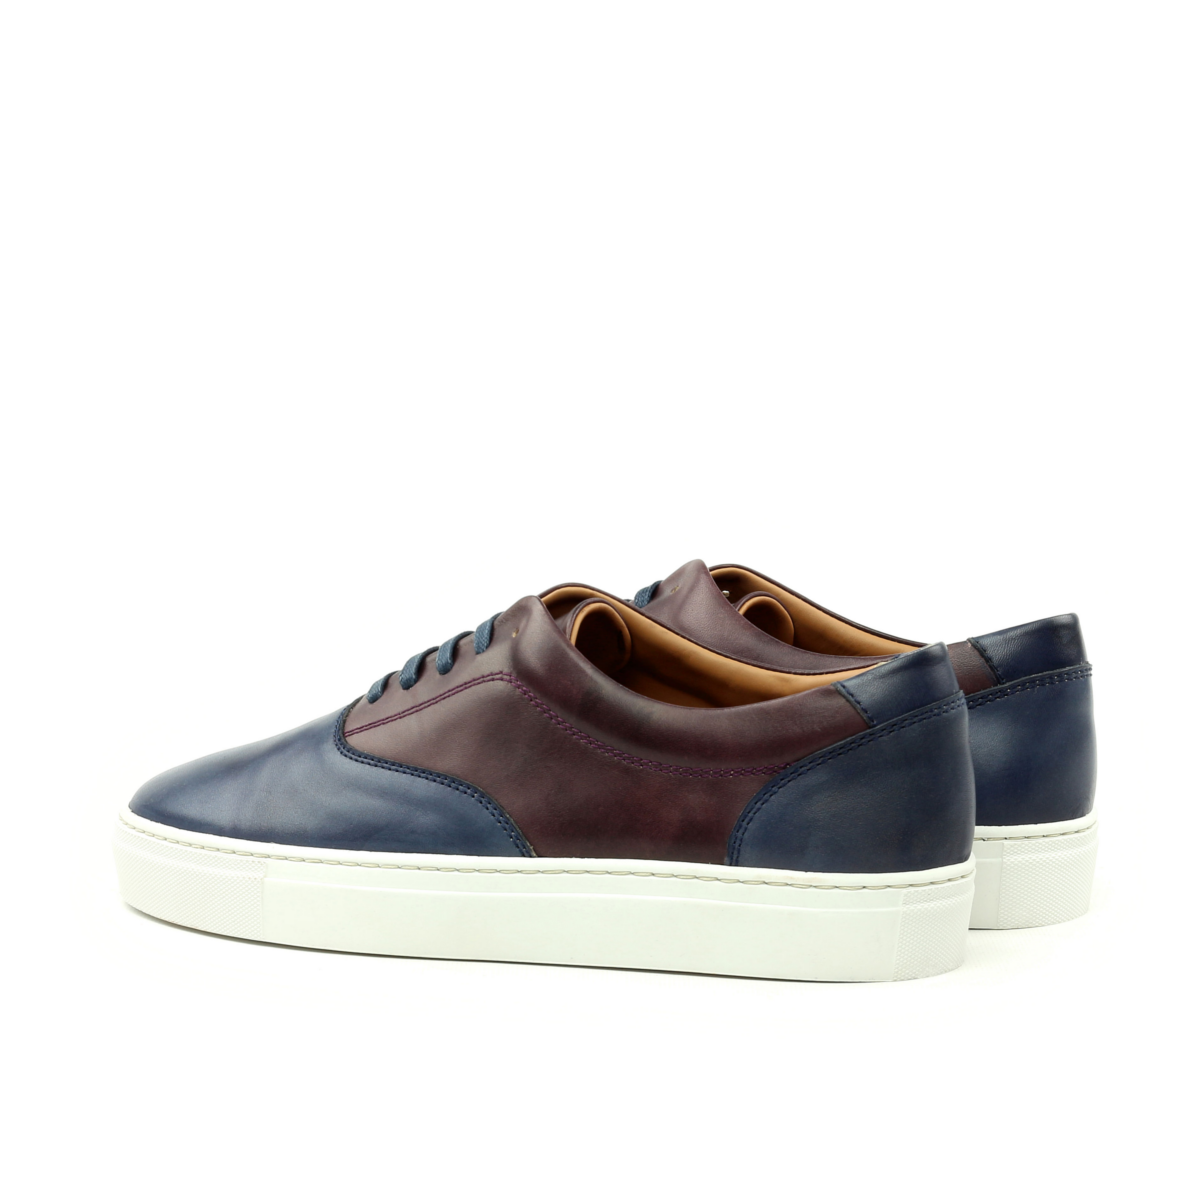 LEO brown and blue box calf sneakers